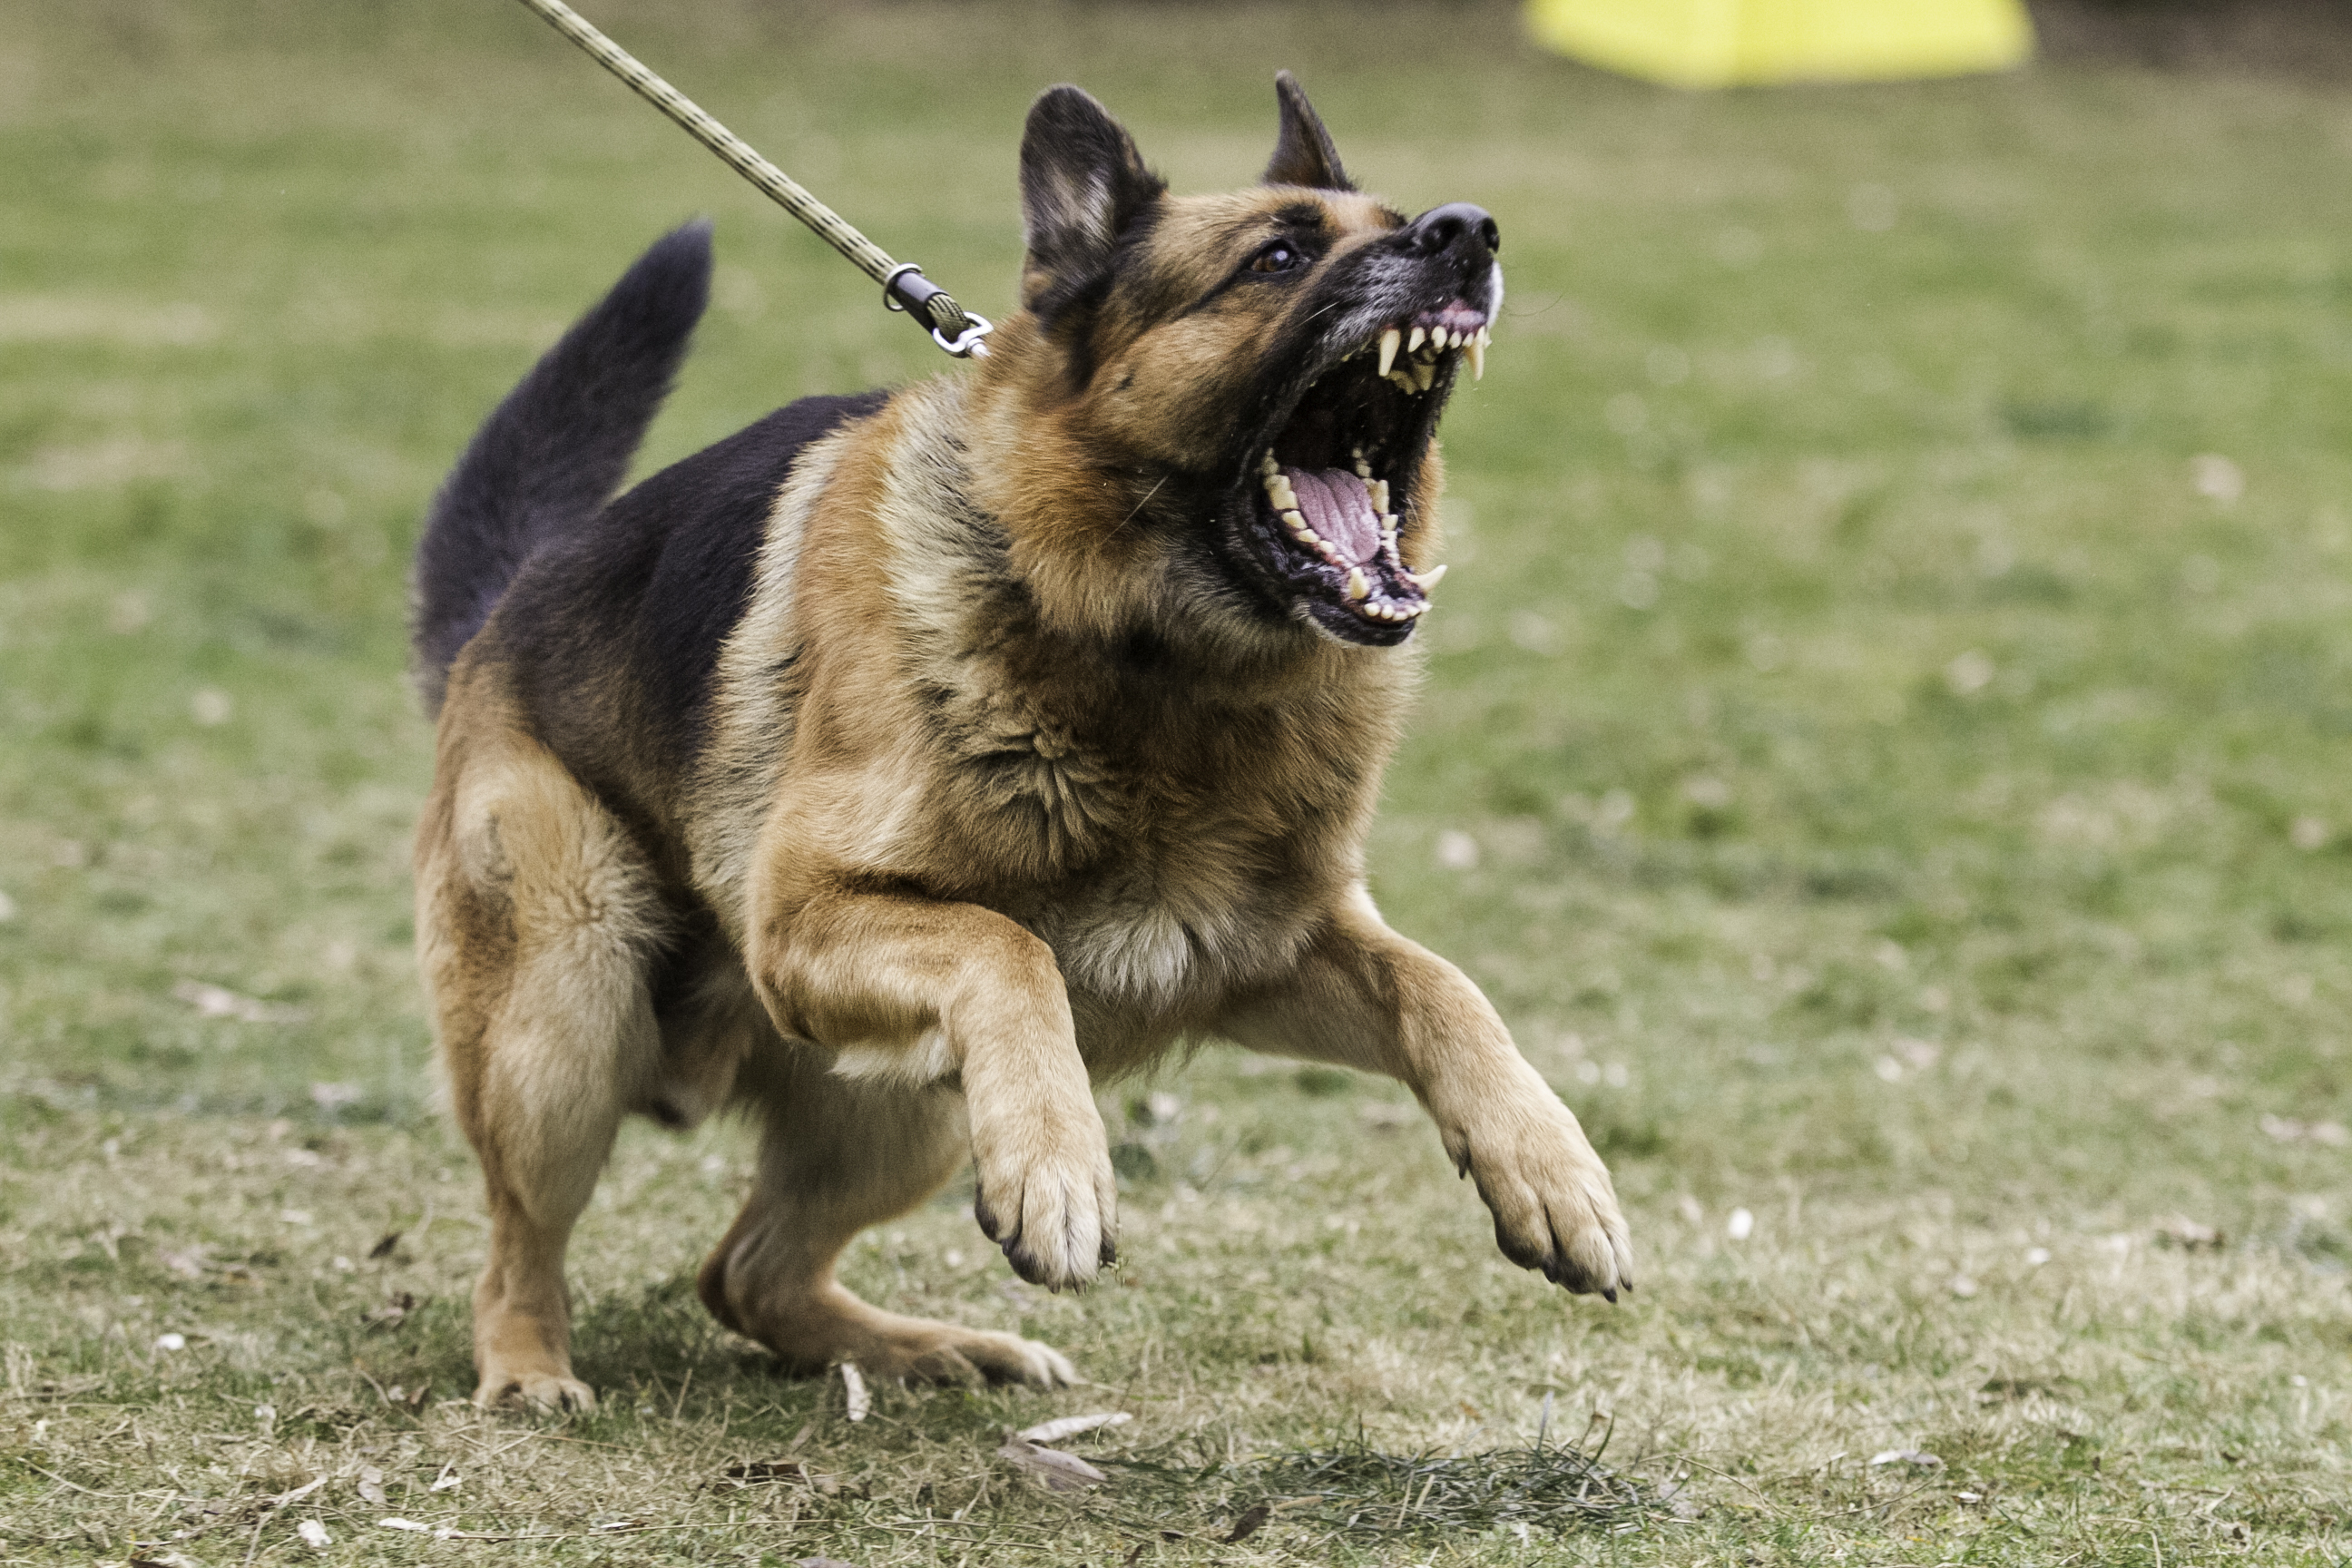 Texas Leads The Nation in the Number of Fatal Dog Bites